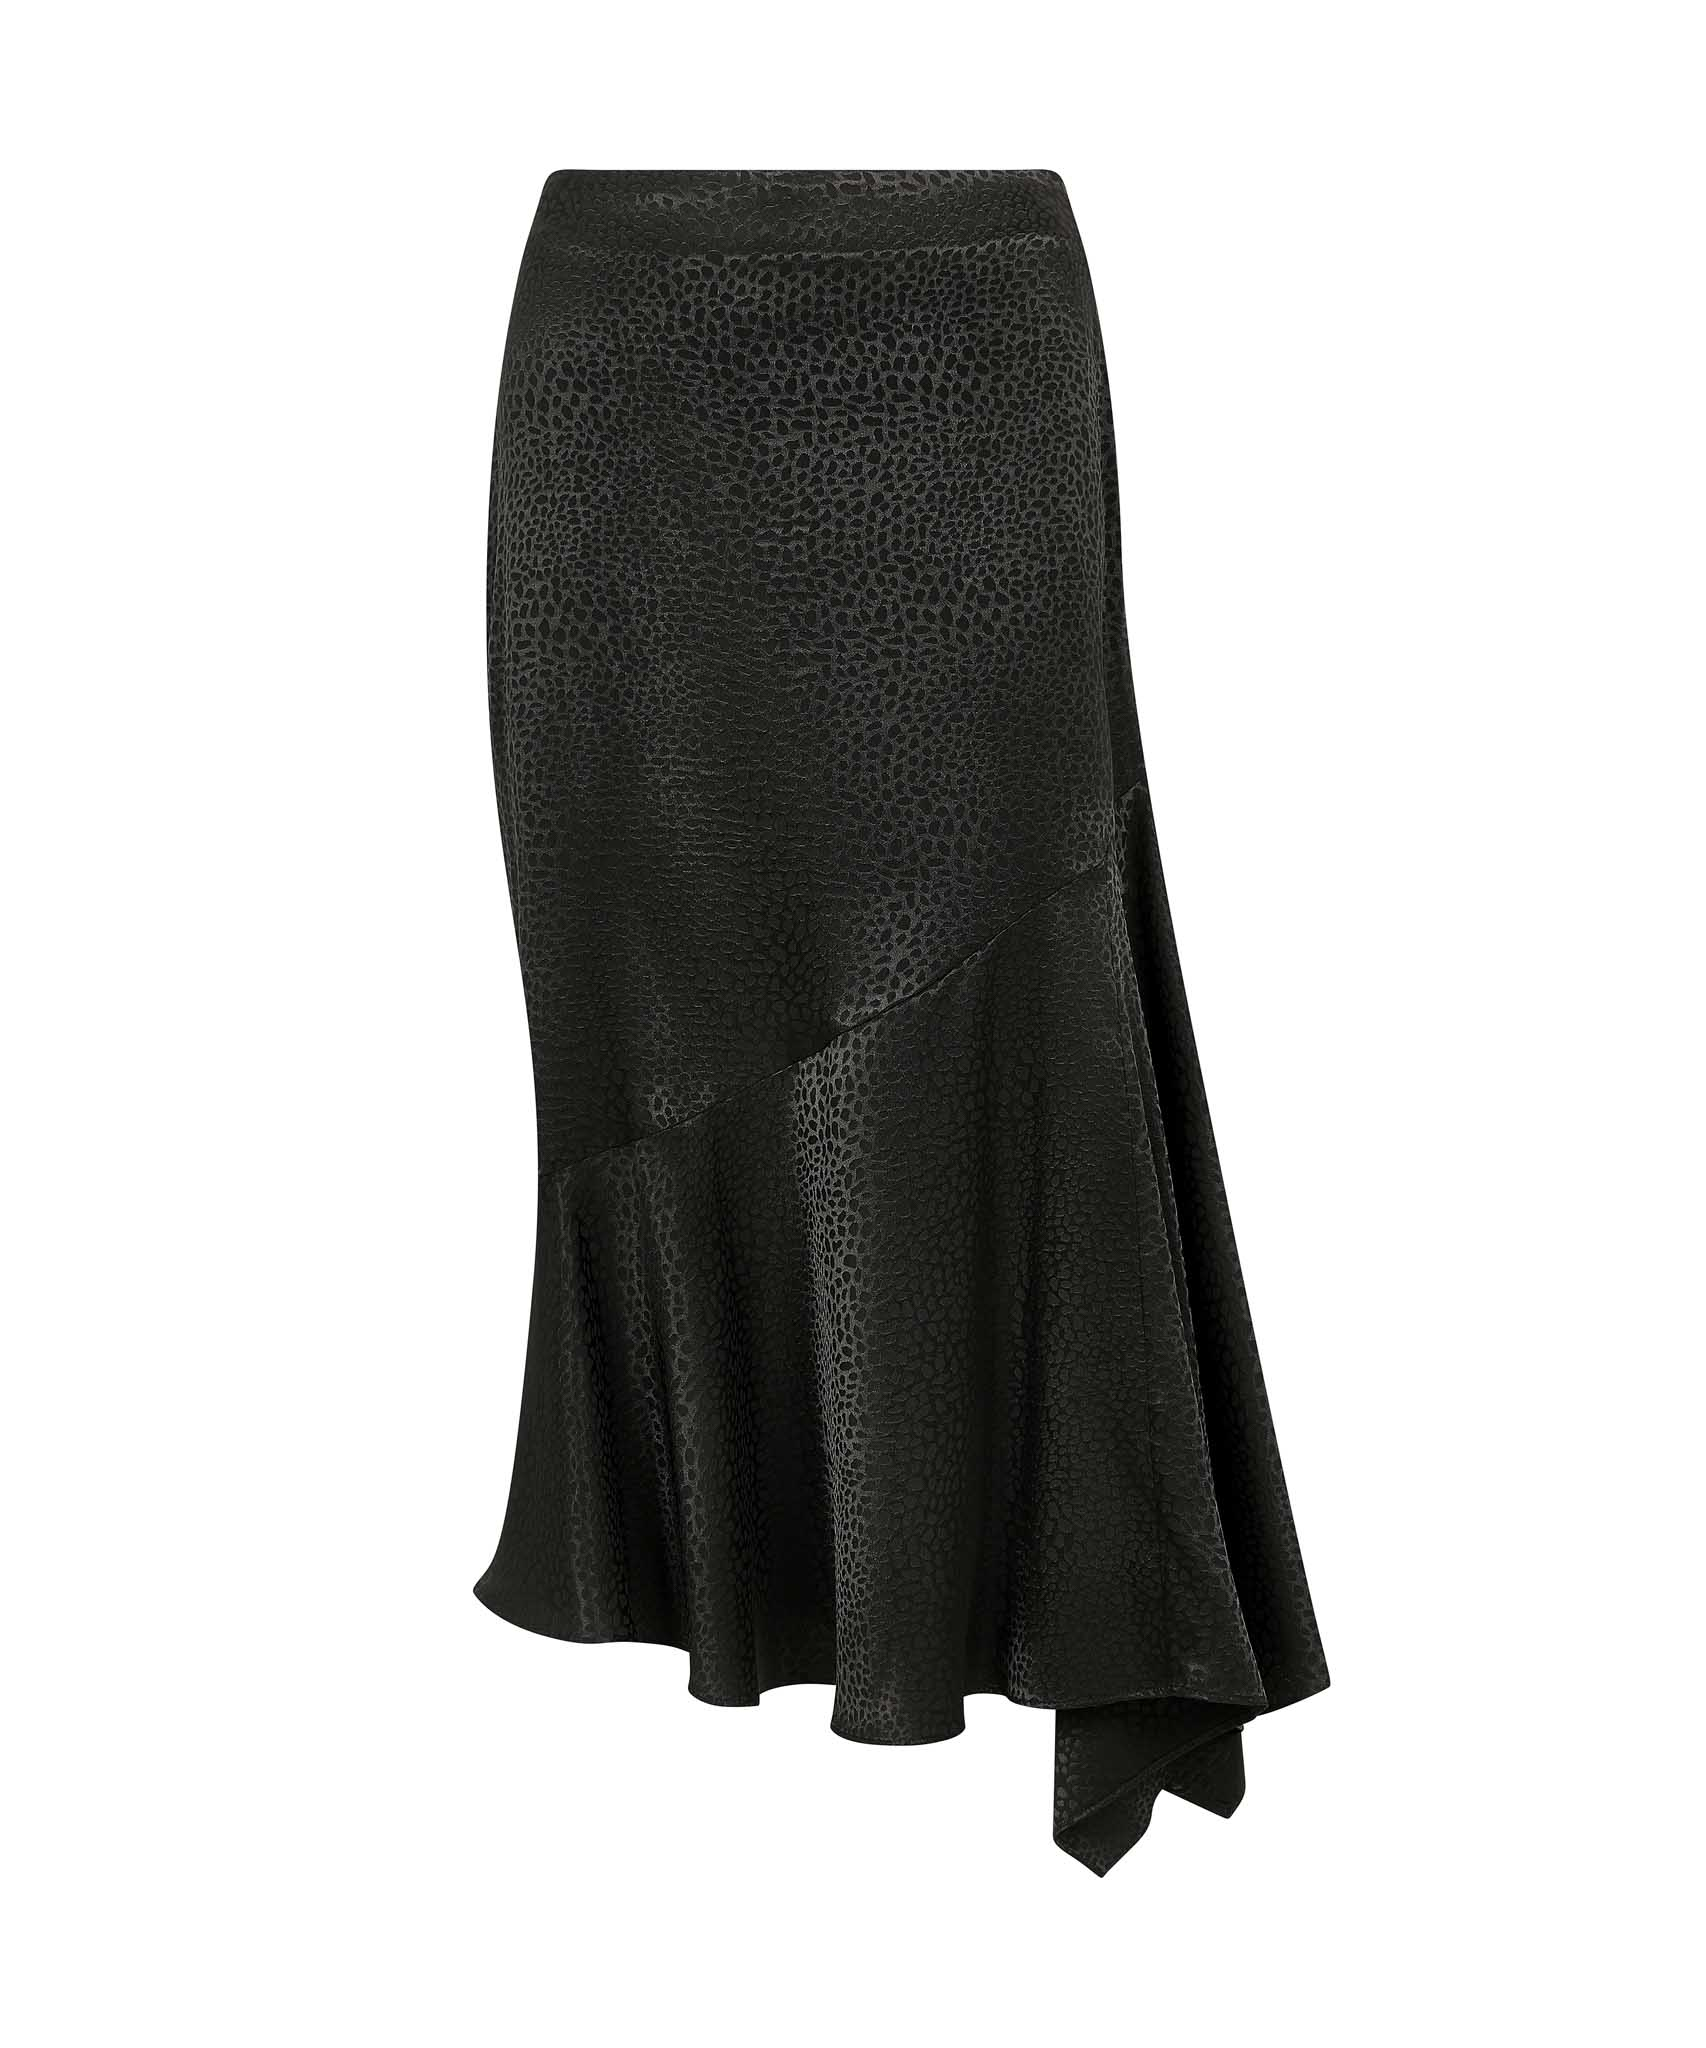 Load image into Gallery viewer, Palones Black Asymmetric Satin Skirt